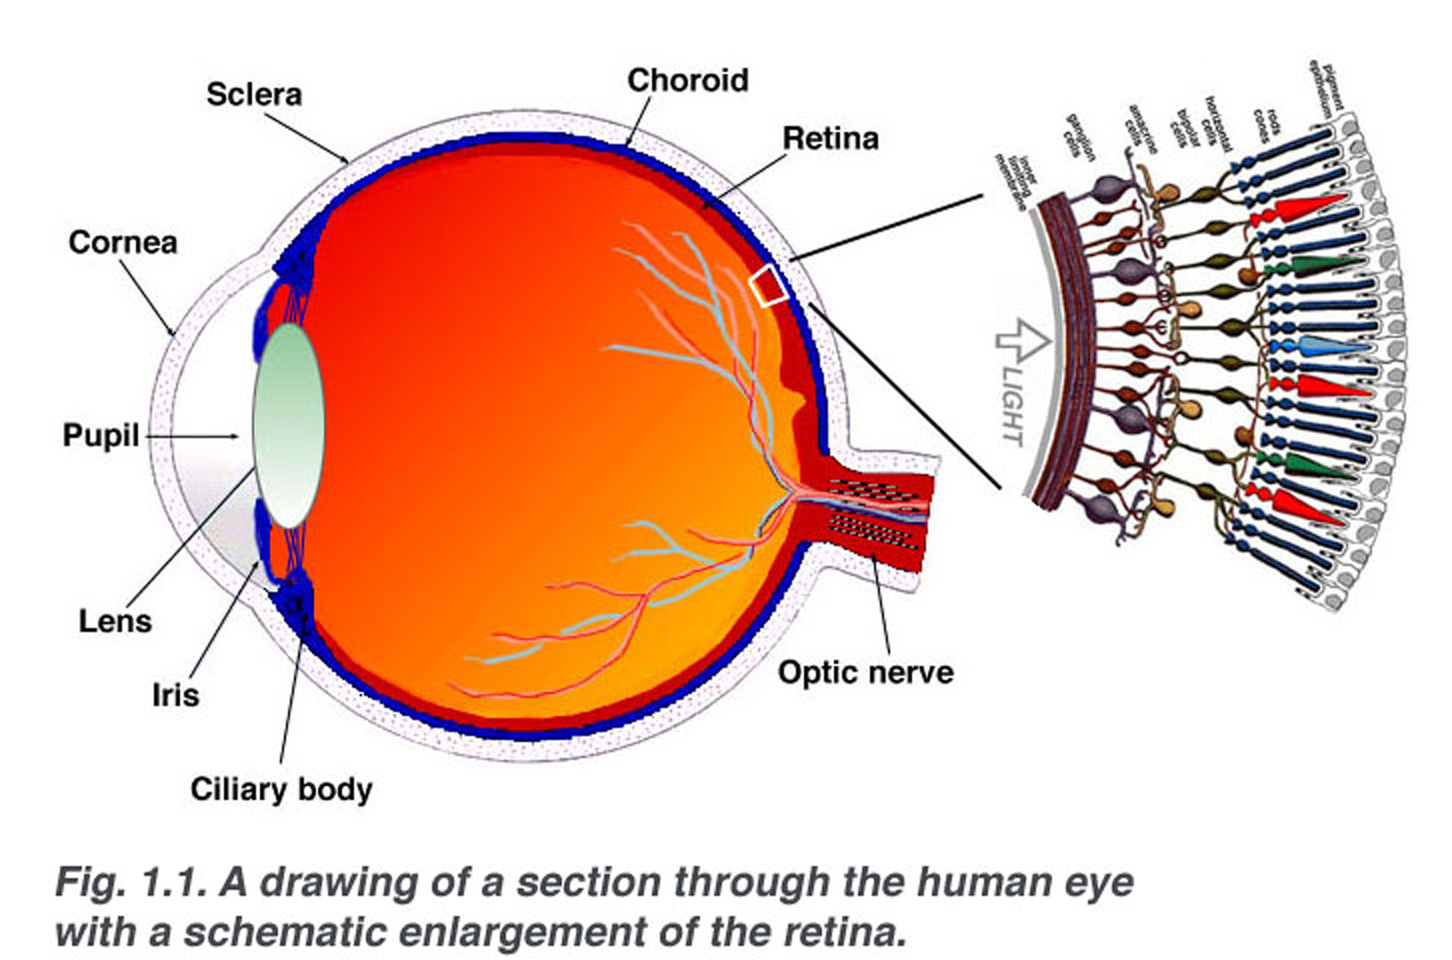 White Blood Cells Diagram Images Pictures Becuo Simple Anatomy Of The Retina By Helga Kolb Webvision Optic Nerve Contains Ganglion Cell Axons Running To Brain And Additionally Incoming Vessels That